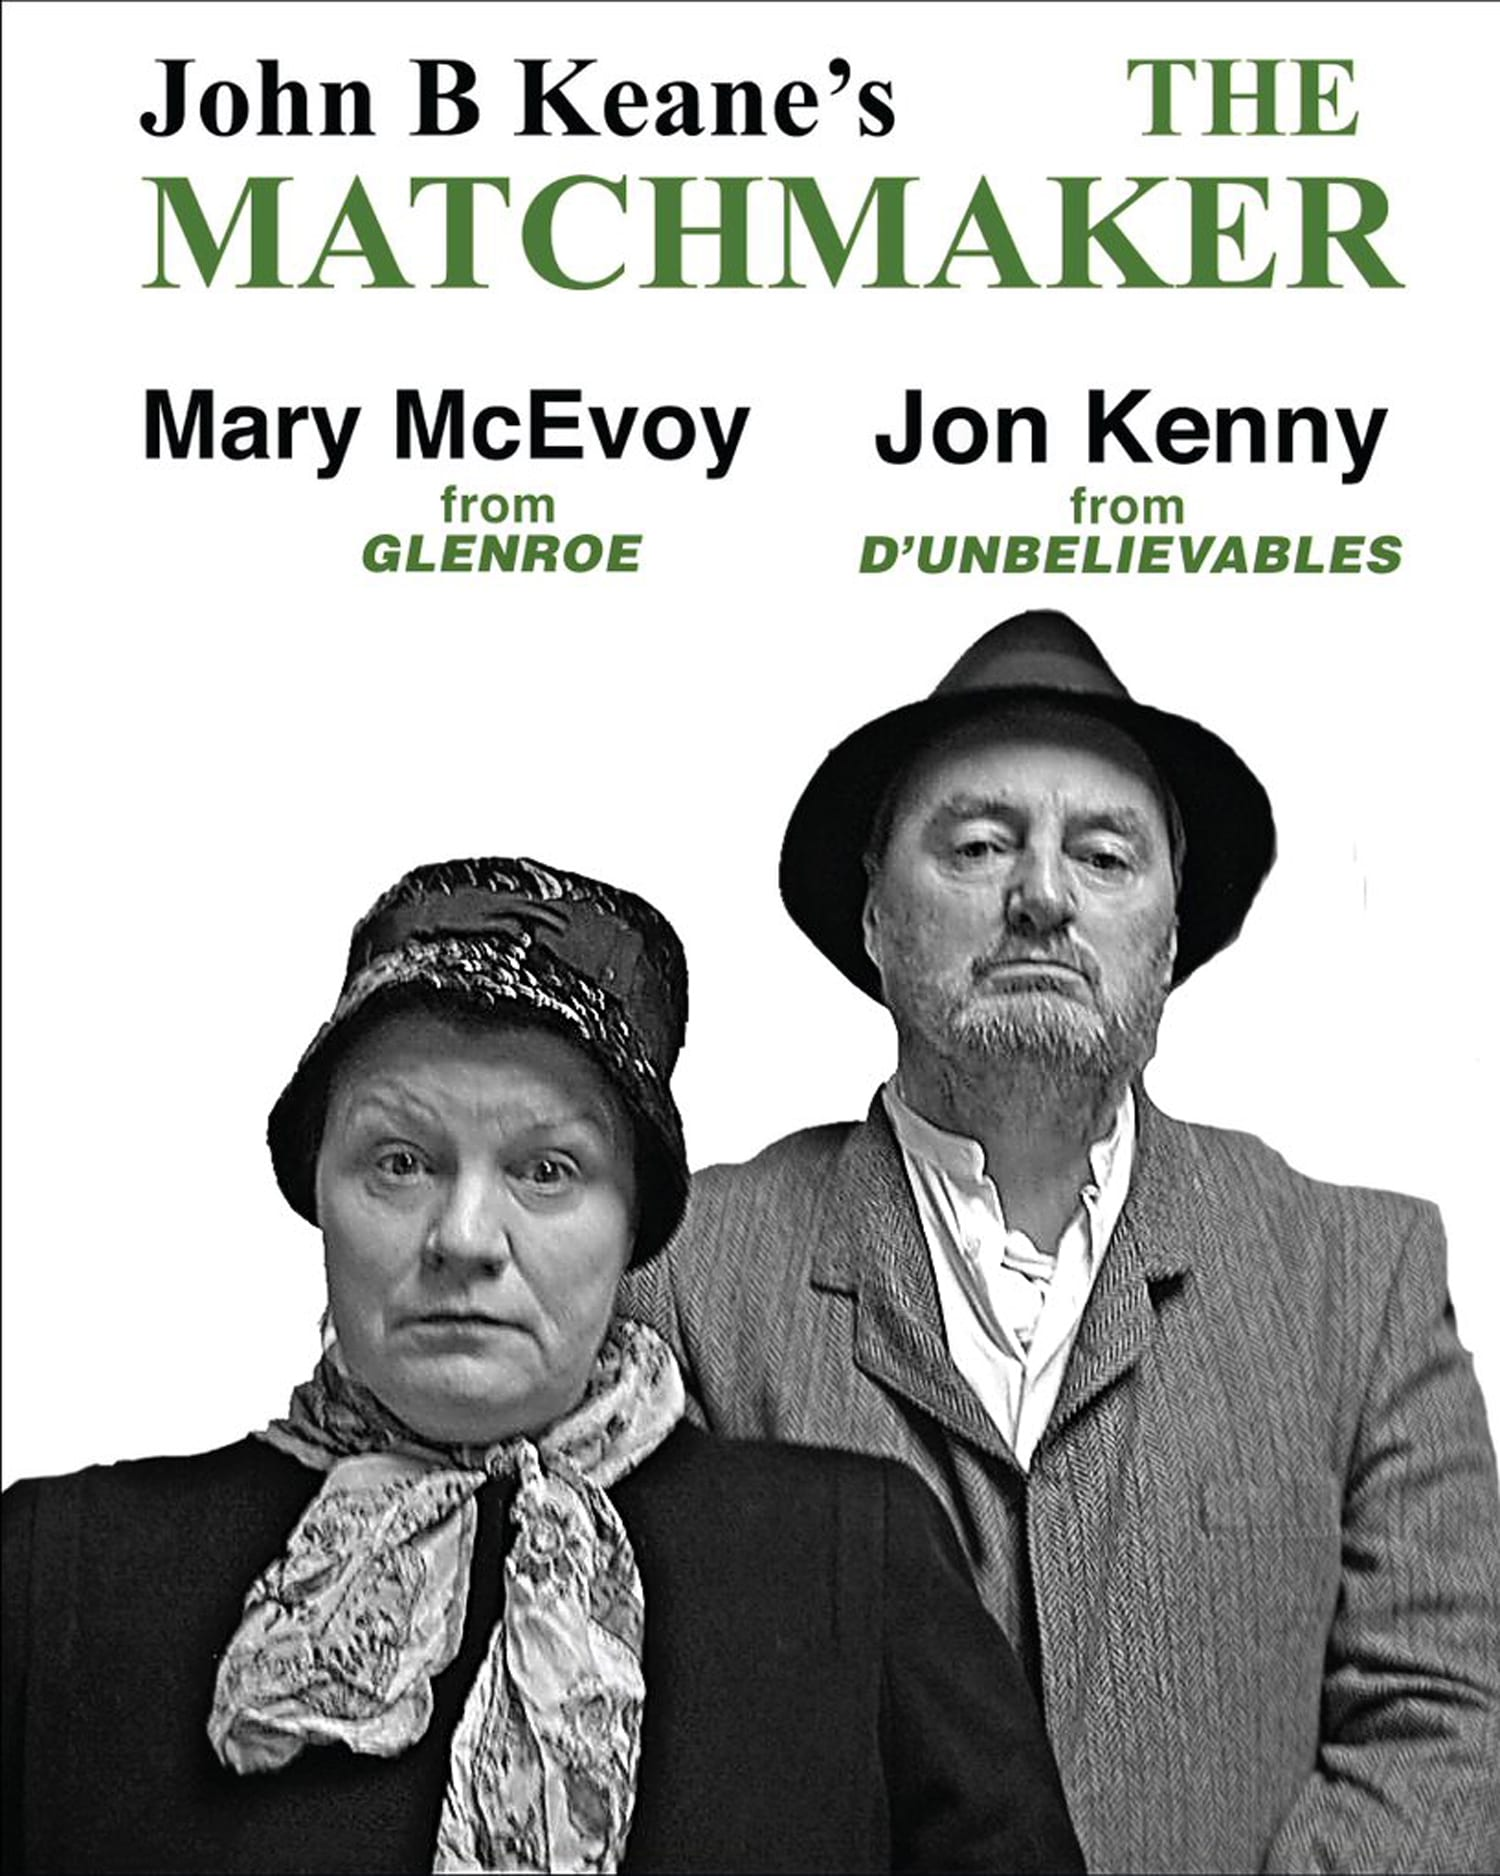 the matchmaker - tonyshirley.co.uk